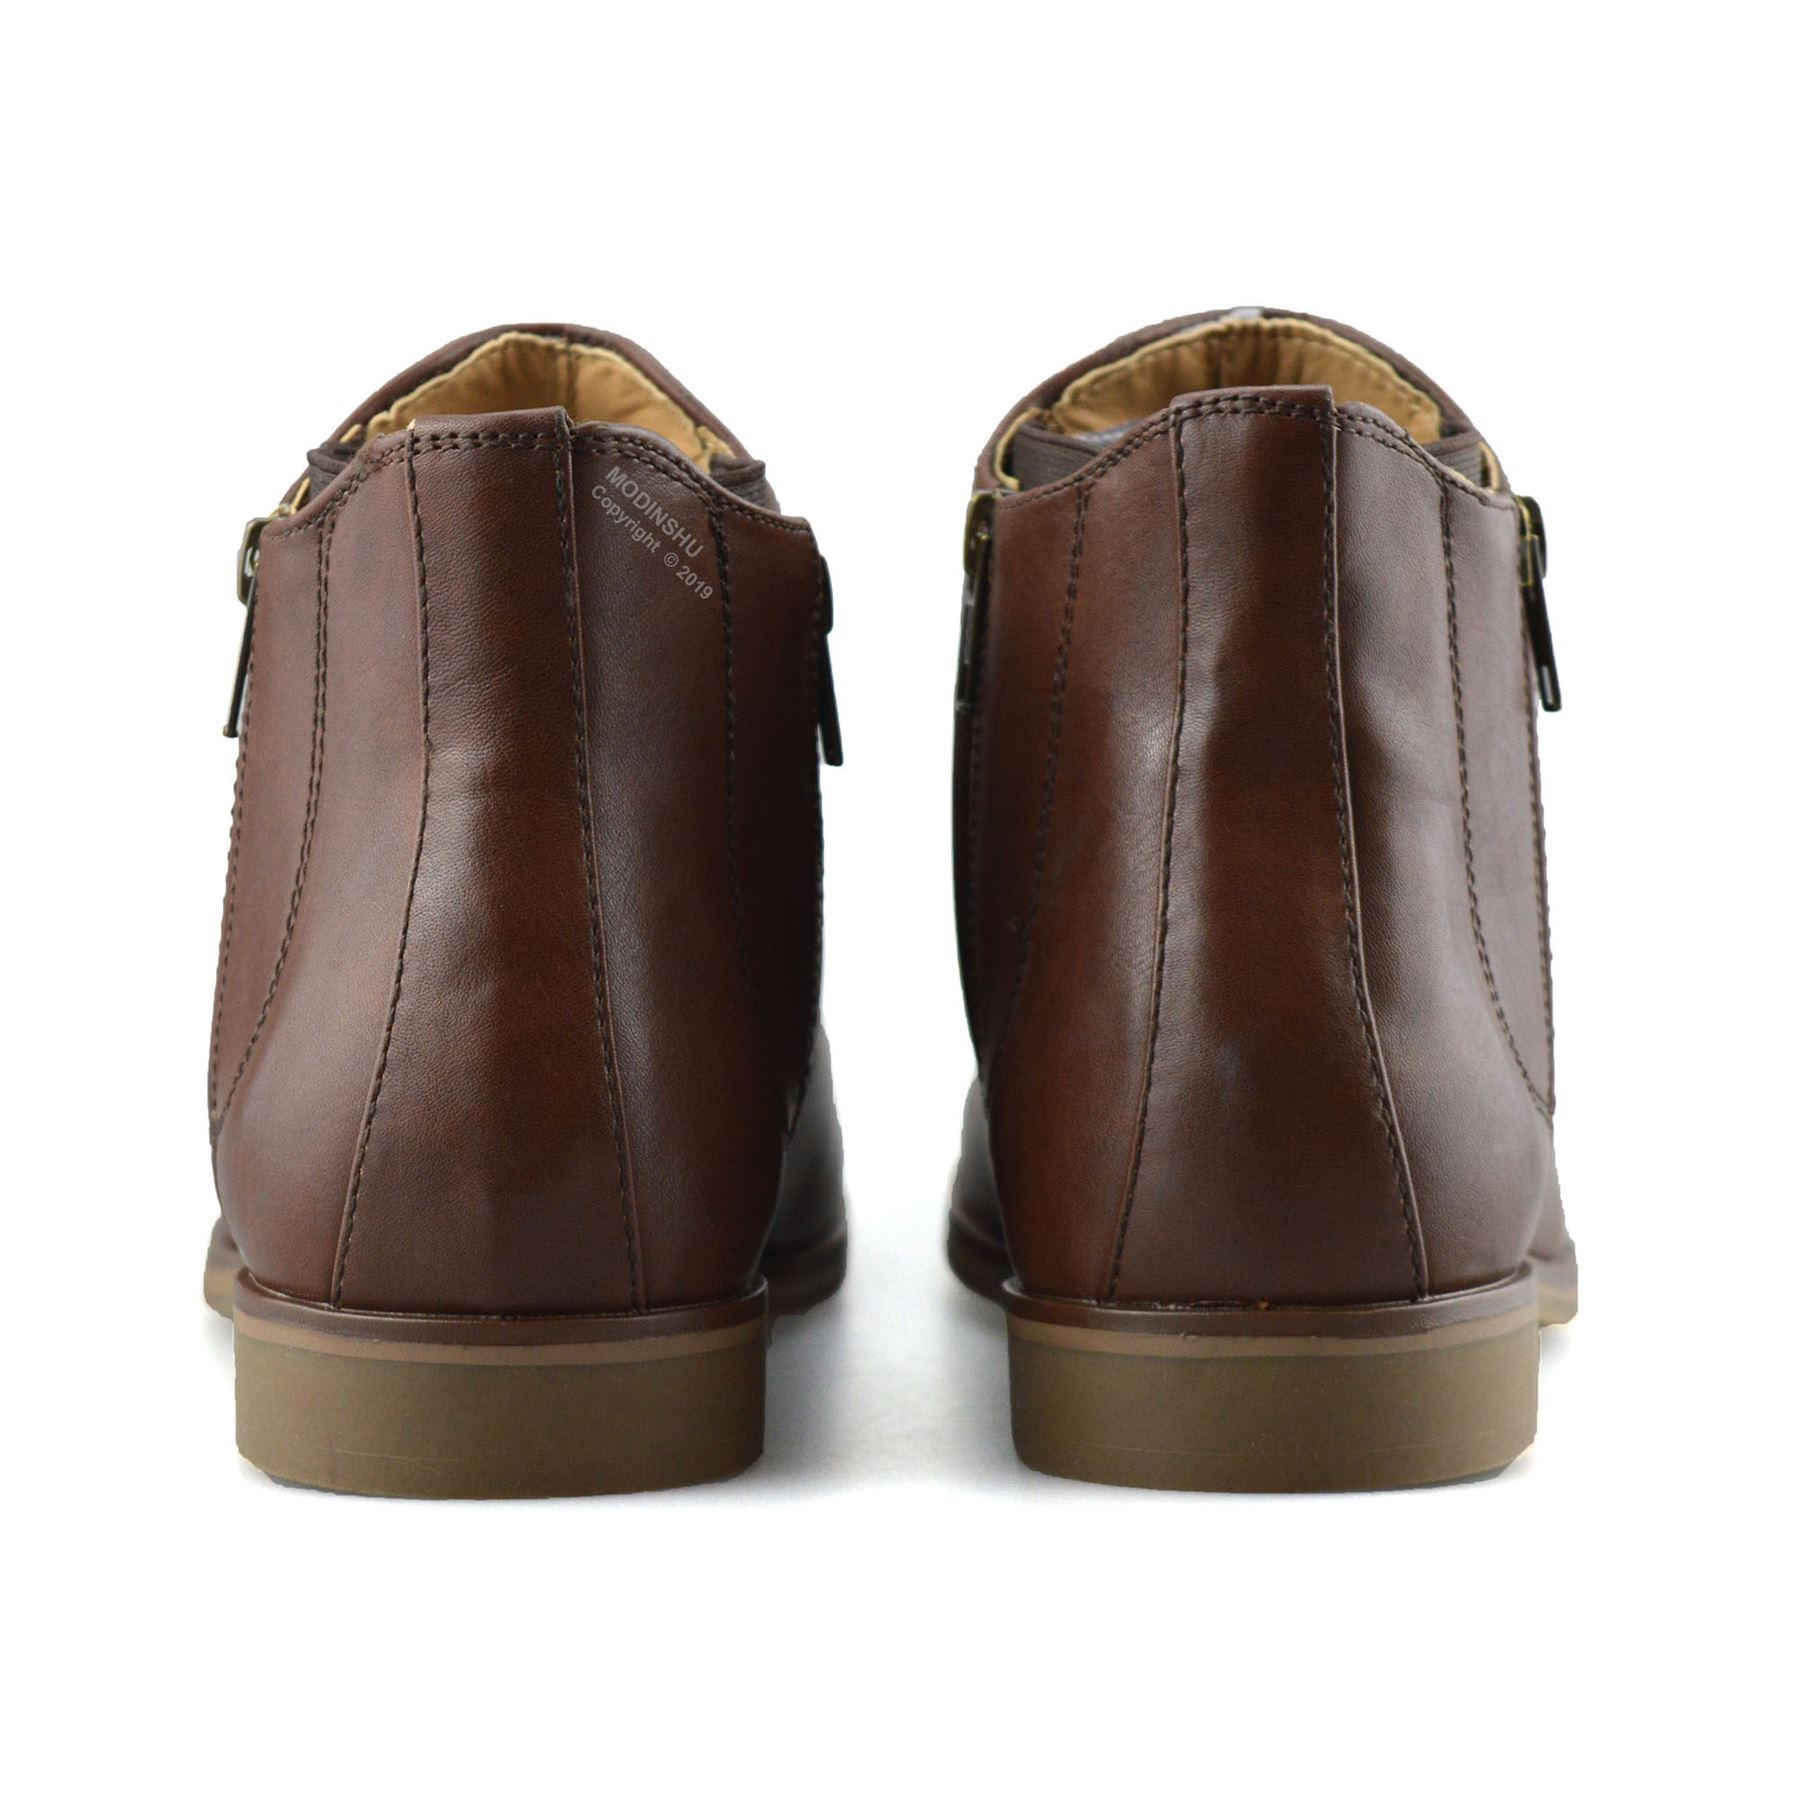 1478ed5035a Details about Mens New Zip Up Casual Smart Formal Chelsea Dealer Work Ankle  Boots Shoes Size